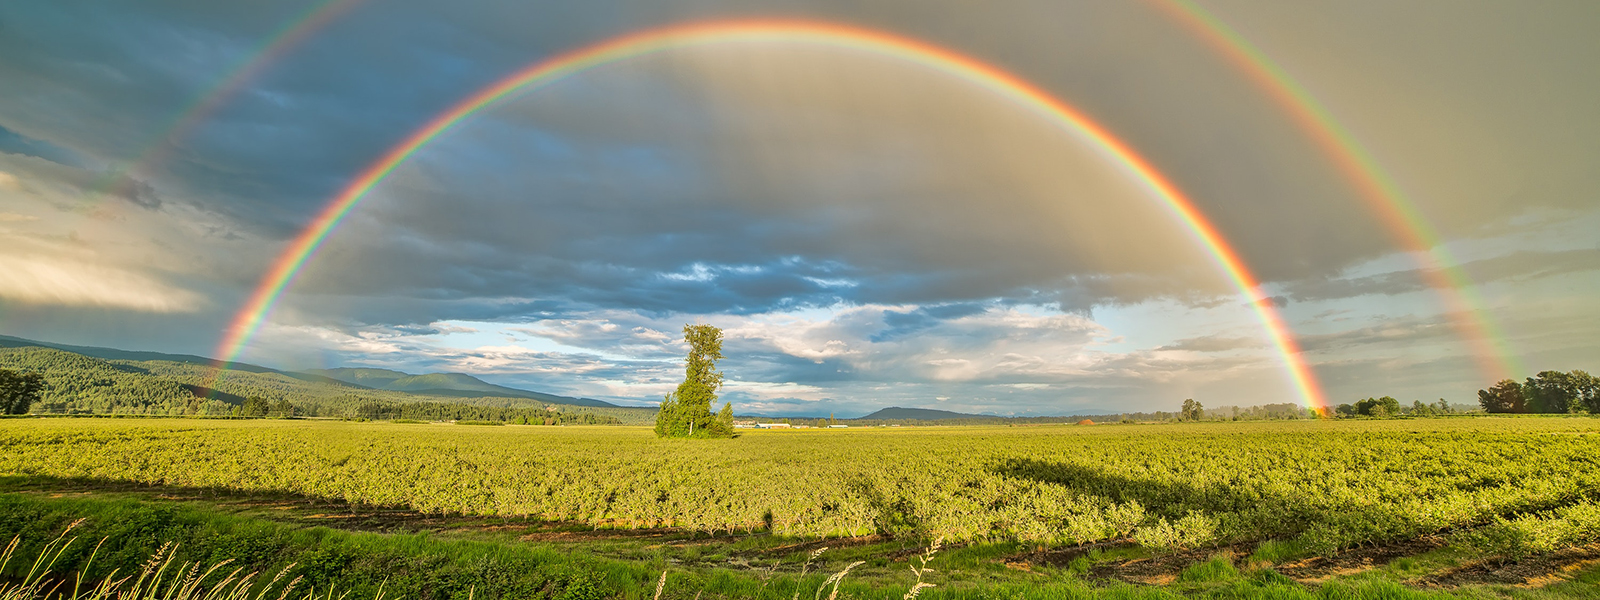 Crop field with rainbow